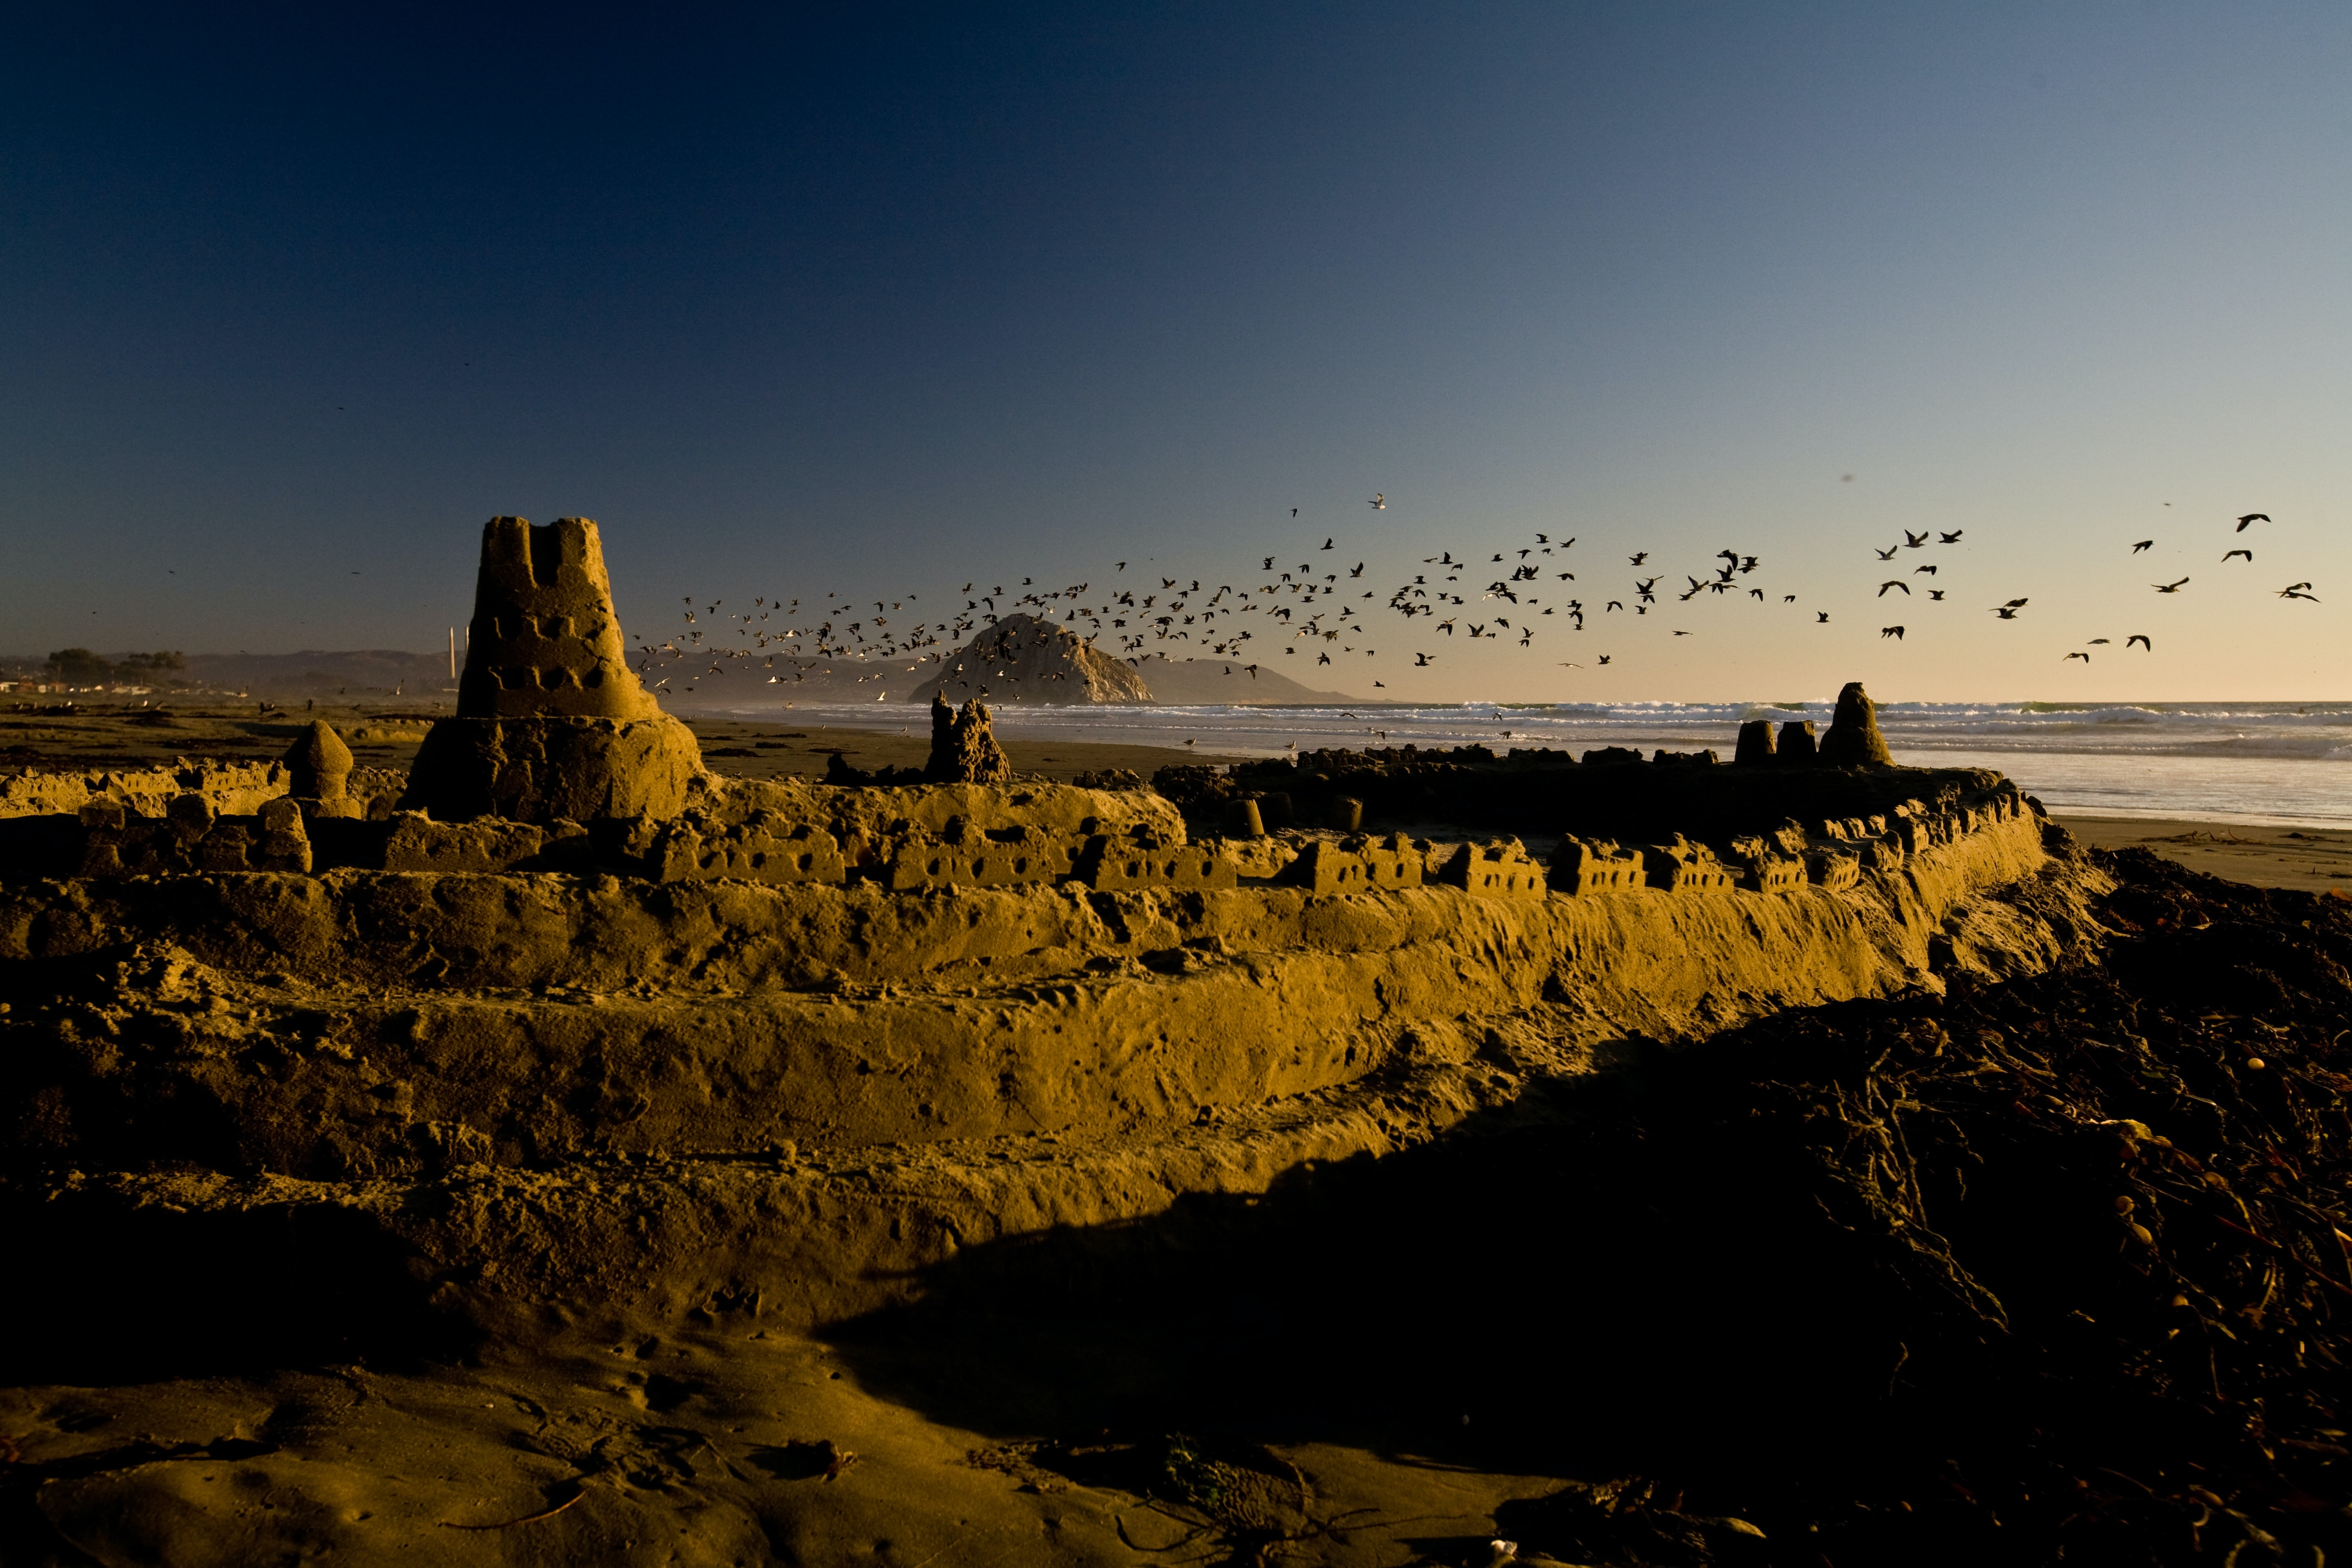 A close up of a sand castle on a beach with a flock of birds in flight over the sea